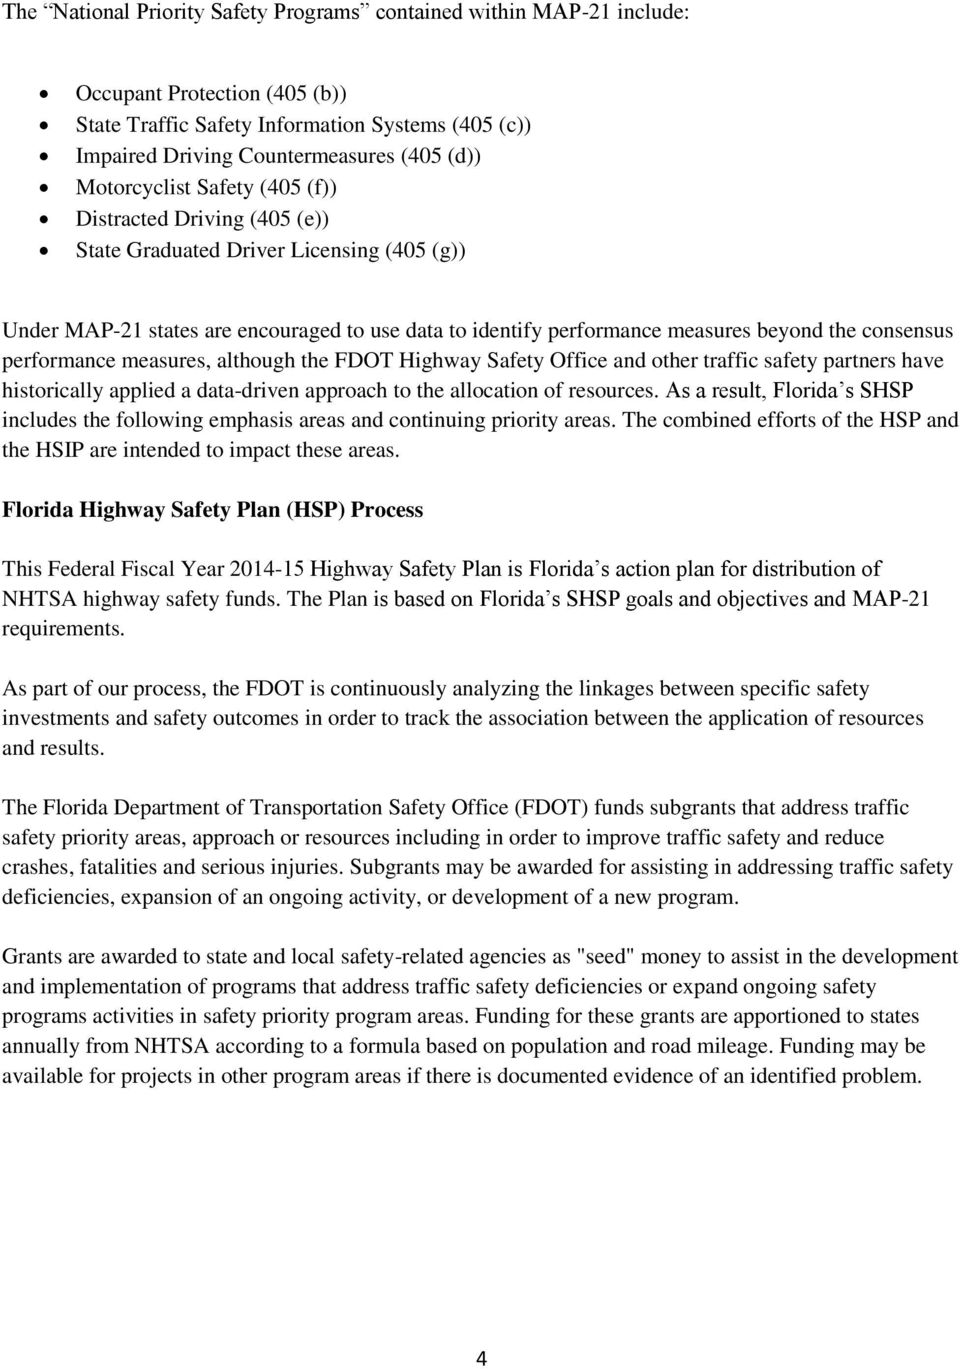 consensus performance measures, although the FDOT Highway Safety Office and other traffic safety partners have historically applied a data-driven approach to the allocation of resources.